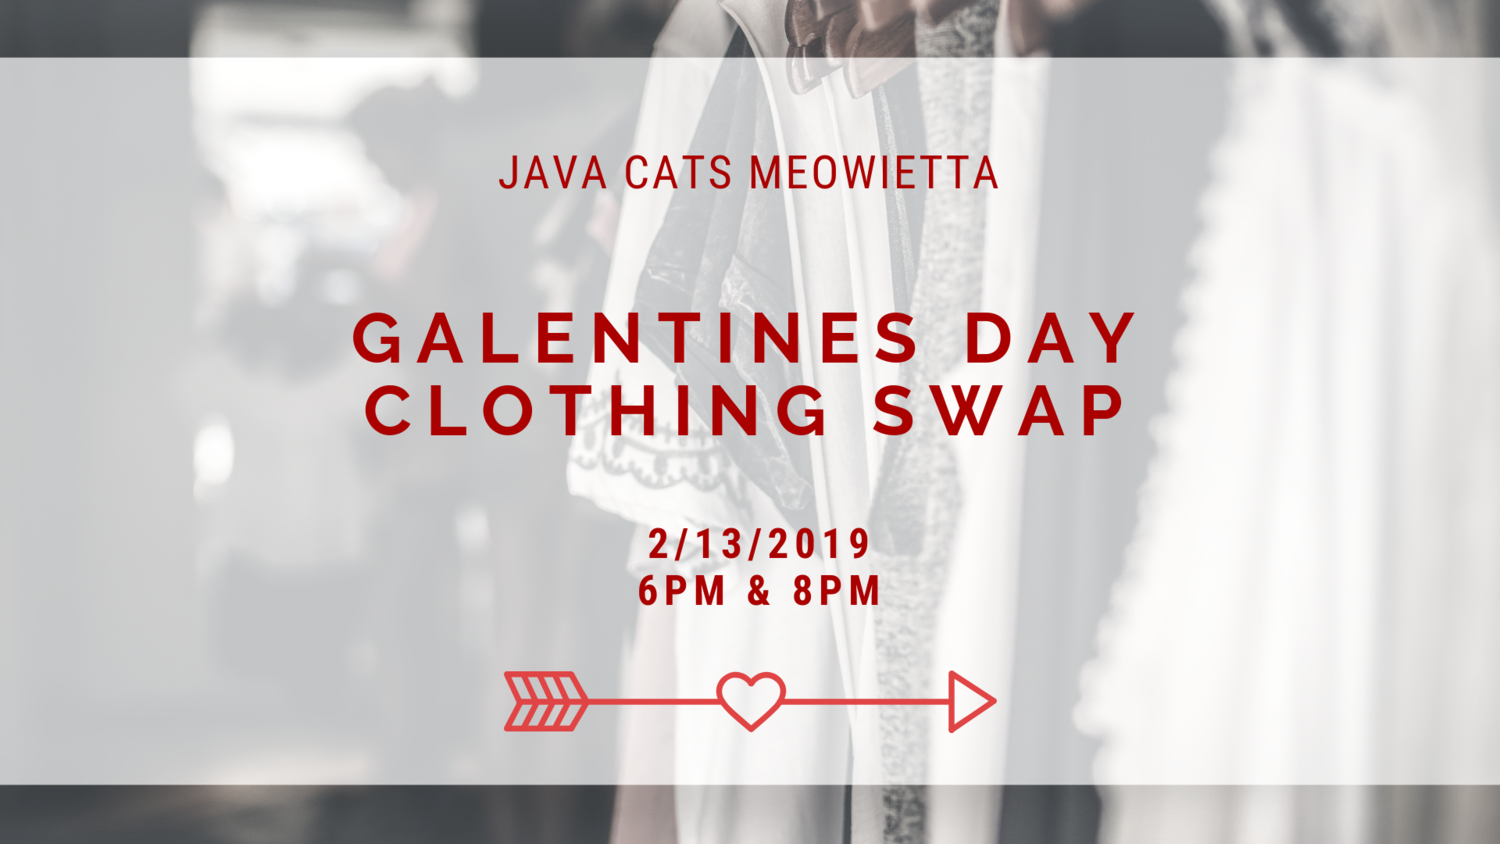 Galentines Day Clothing Swap Marietta! — Java Cats Cafe Marietta